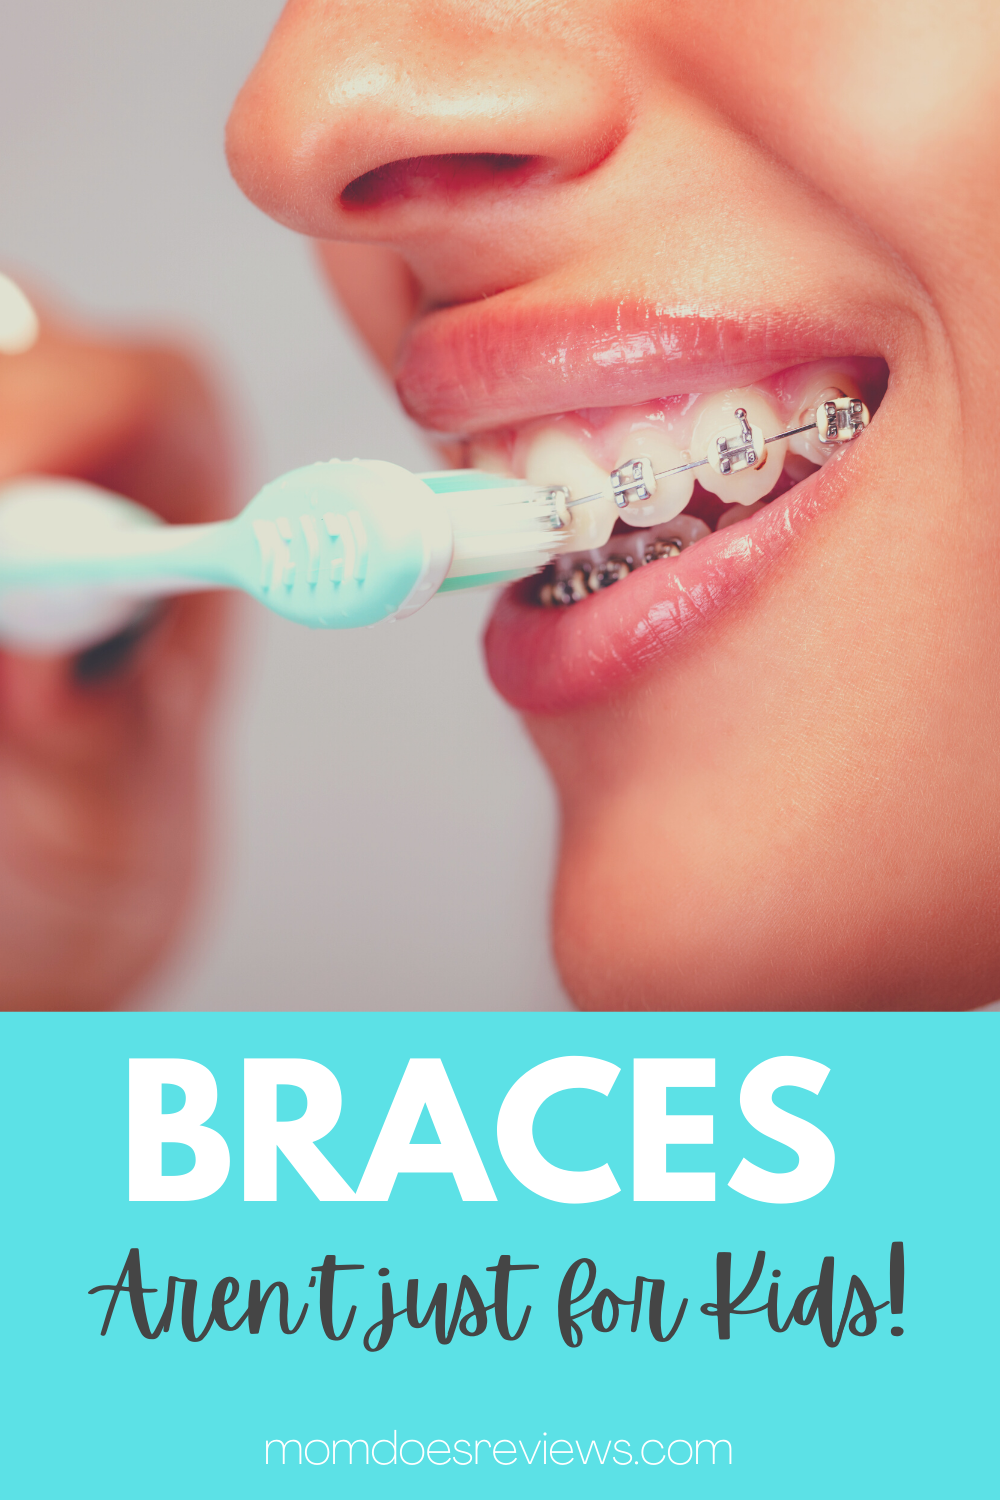 Braces Aren't Just for Kids